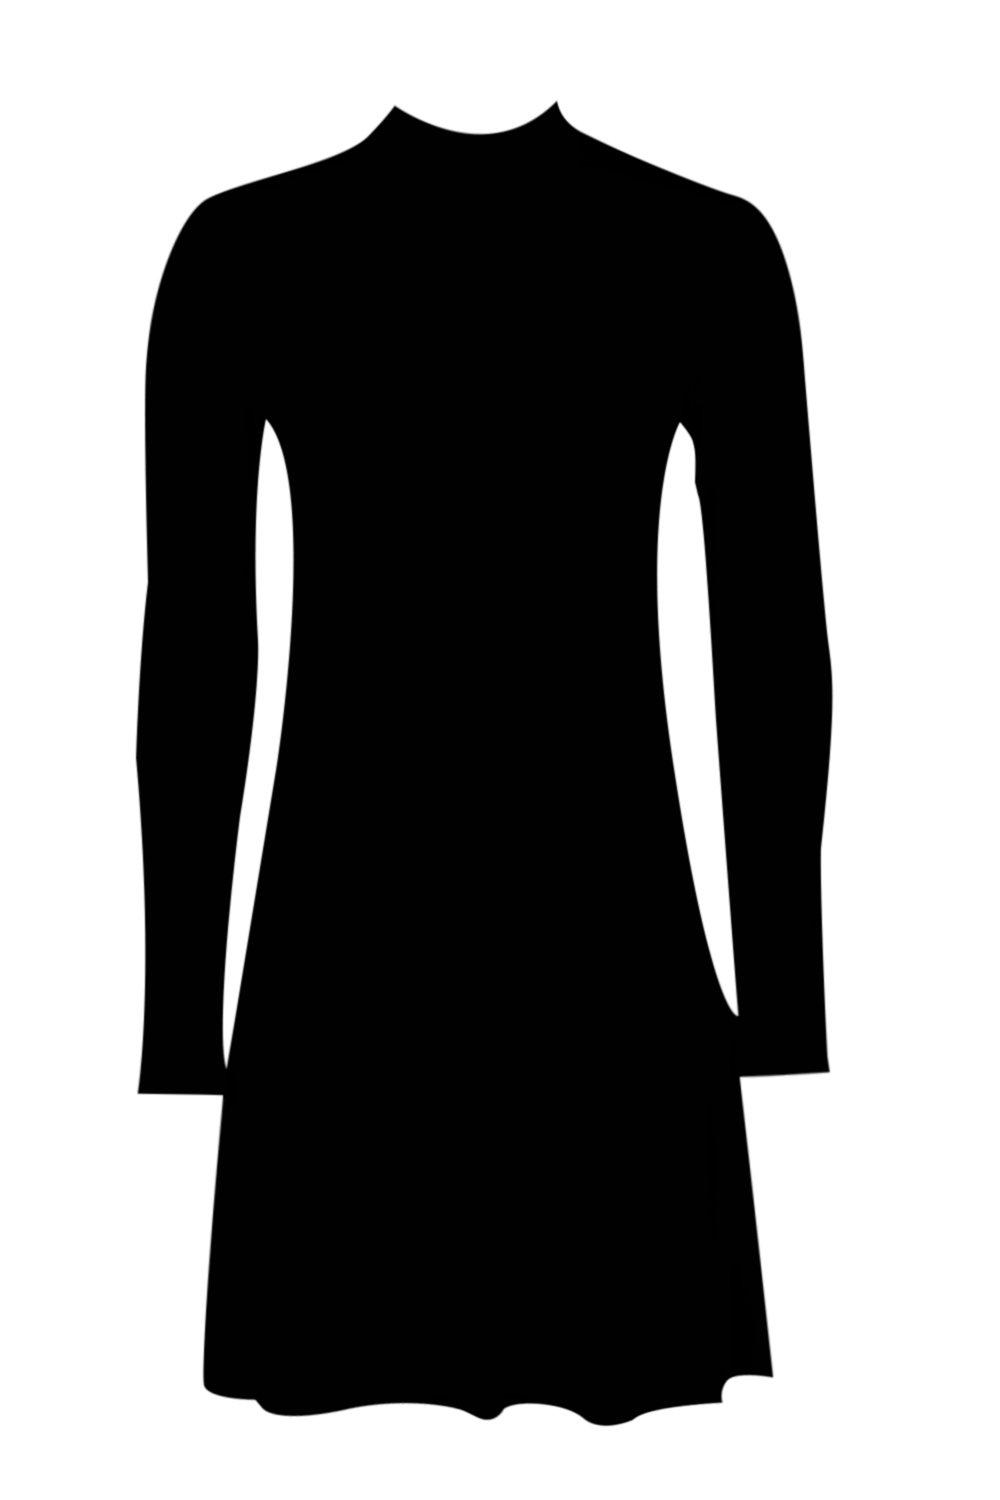 0039c4bec05 Womens Black High Neck Long Sleeved Swing Dress. Hover to zoom. Close video